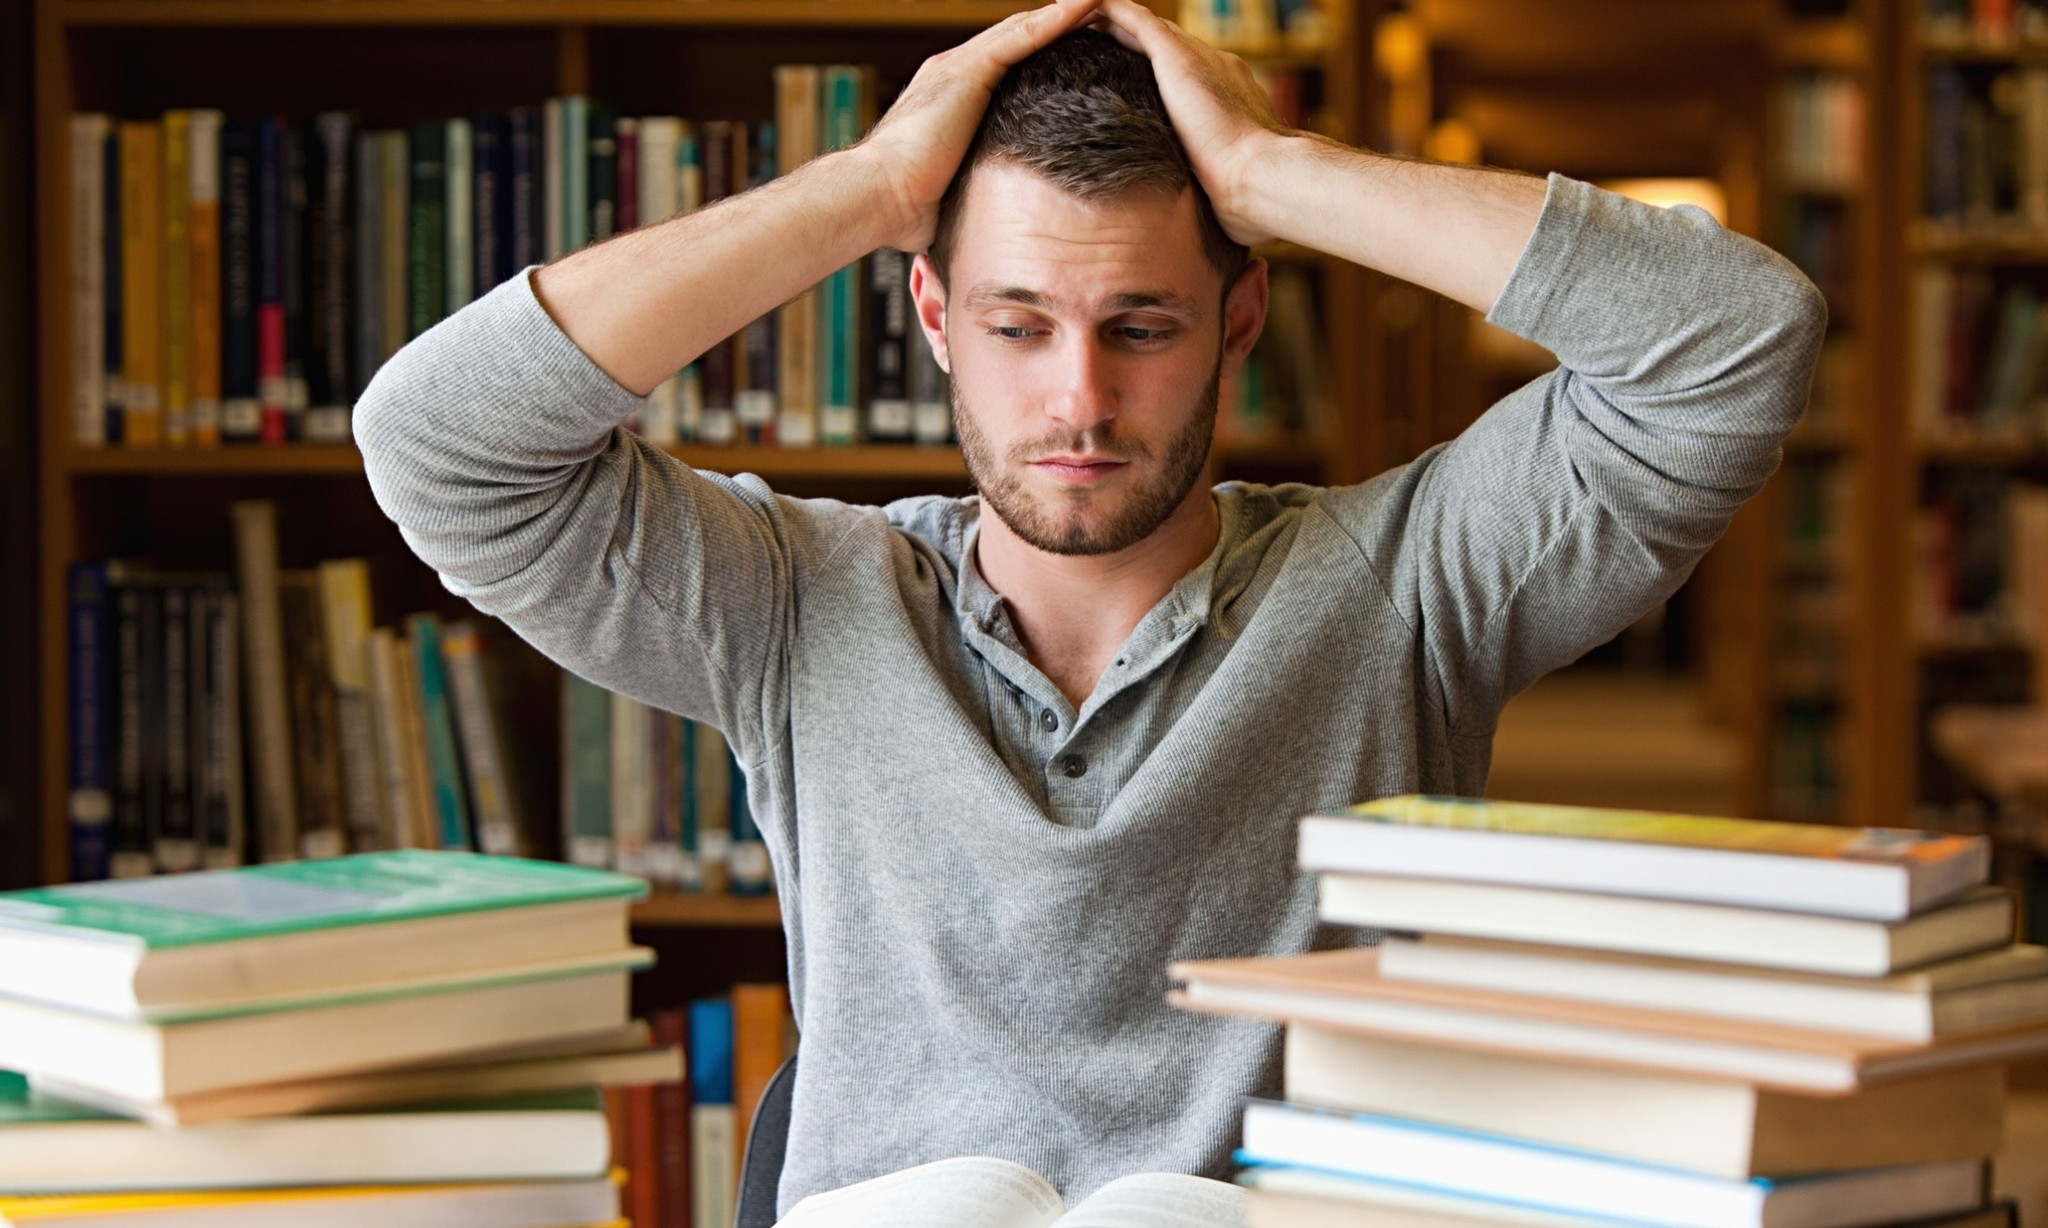 University students trapped by 'unlawful' terms and conditions